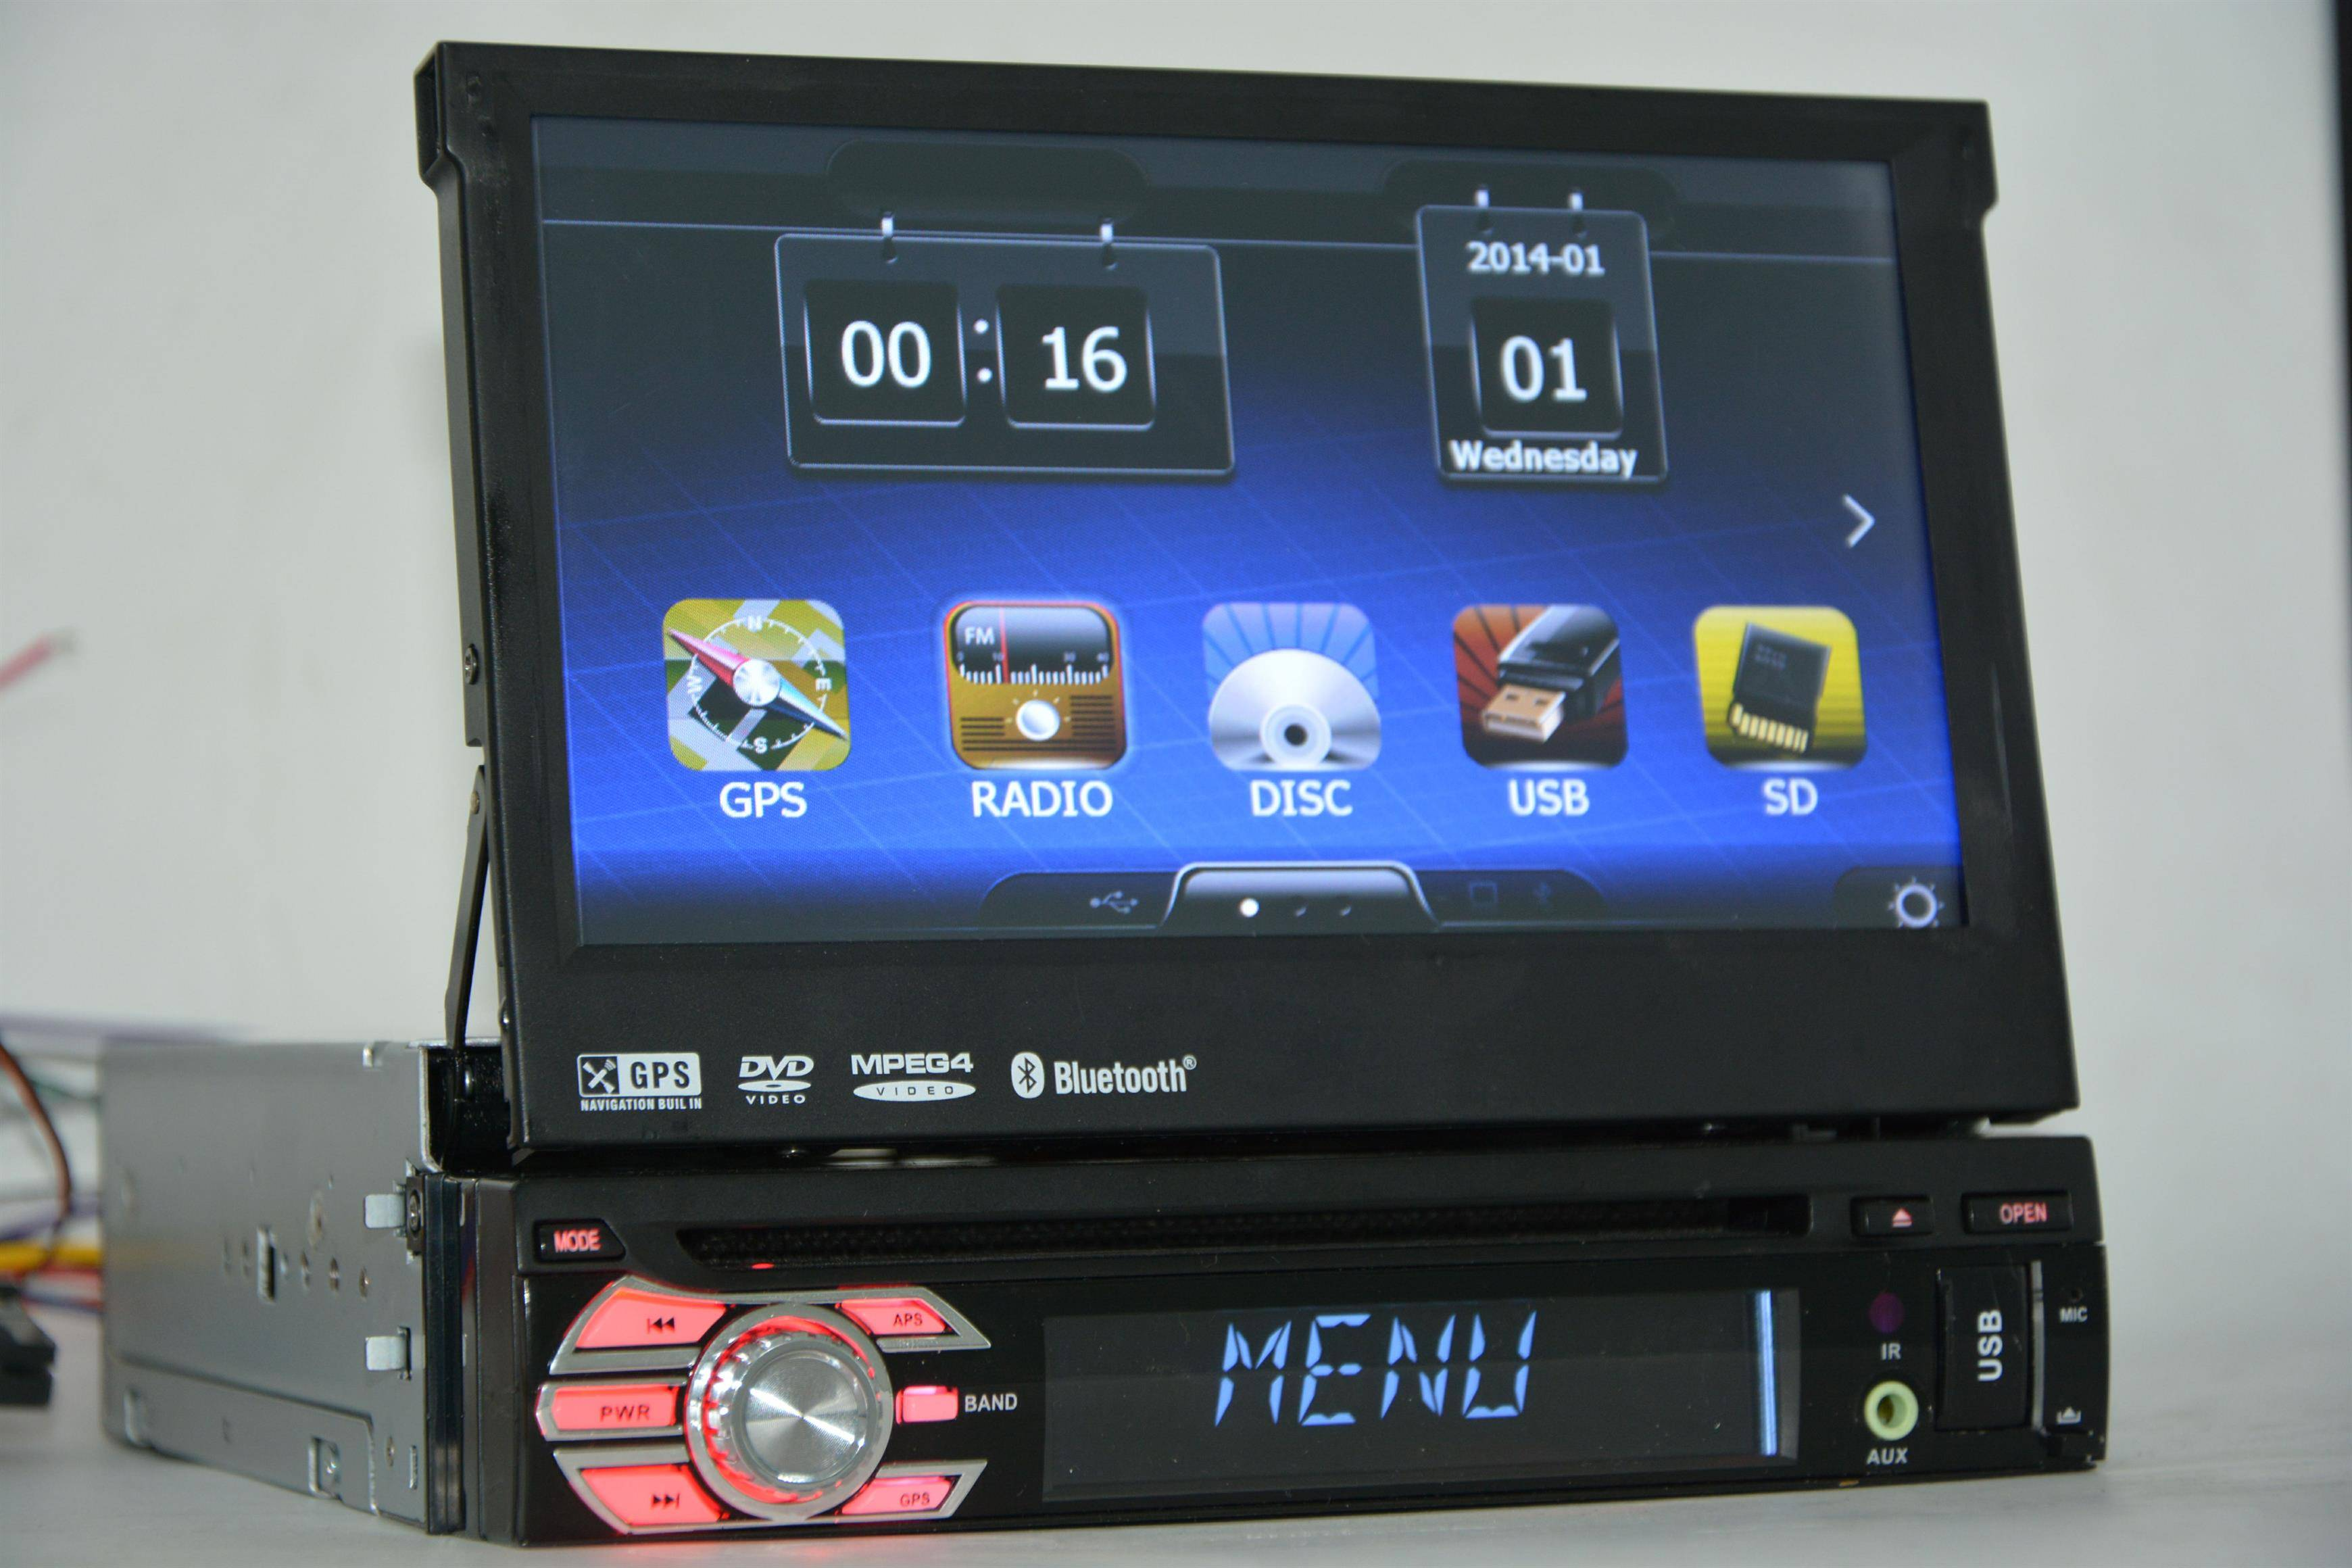 1-Din Universal Car DVD GPS + Bluetooth + iPod + Radio + USB/SD/Aux-Input, Motorized Slide-Down P